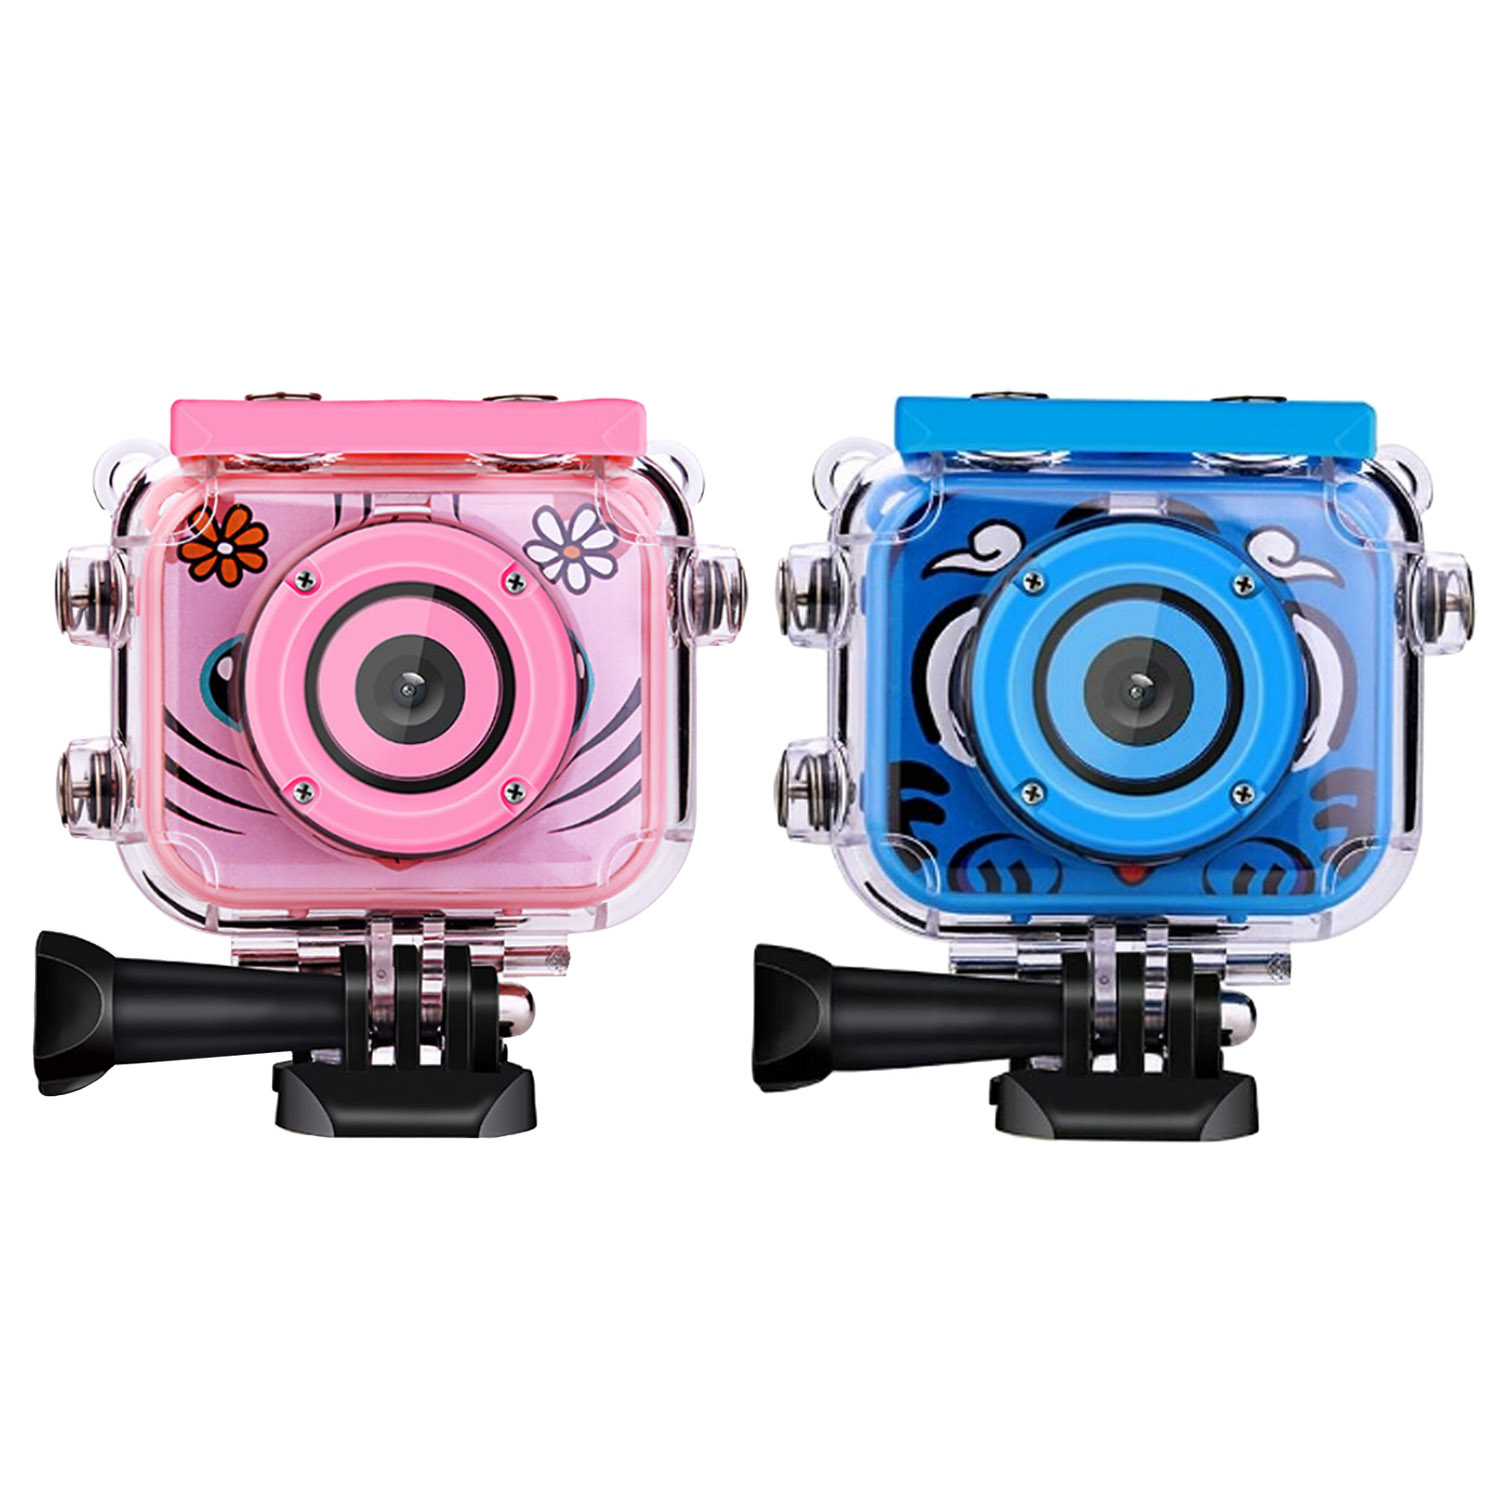 Kids USB Rechargeable 1080P HD Waterproof Action Digital Camera With 2.0inch LCD Screen For Birthday Festival Toy Gift